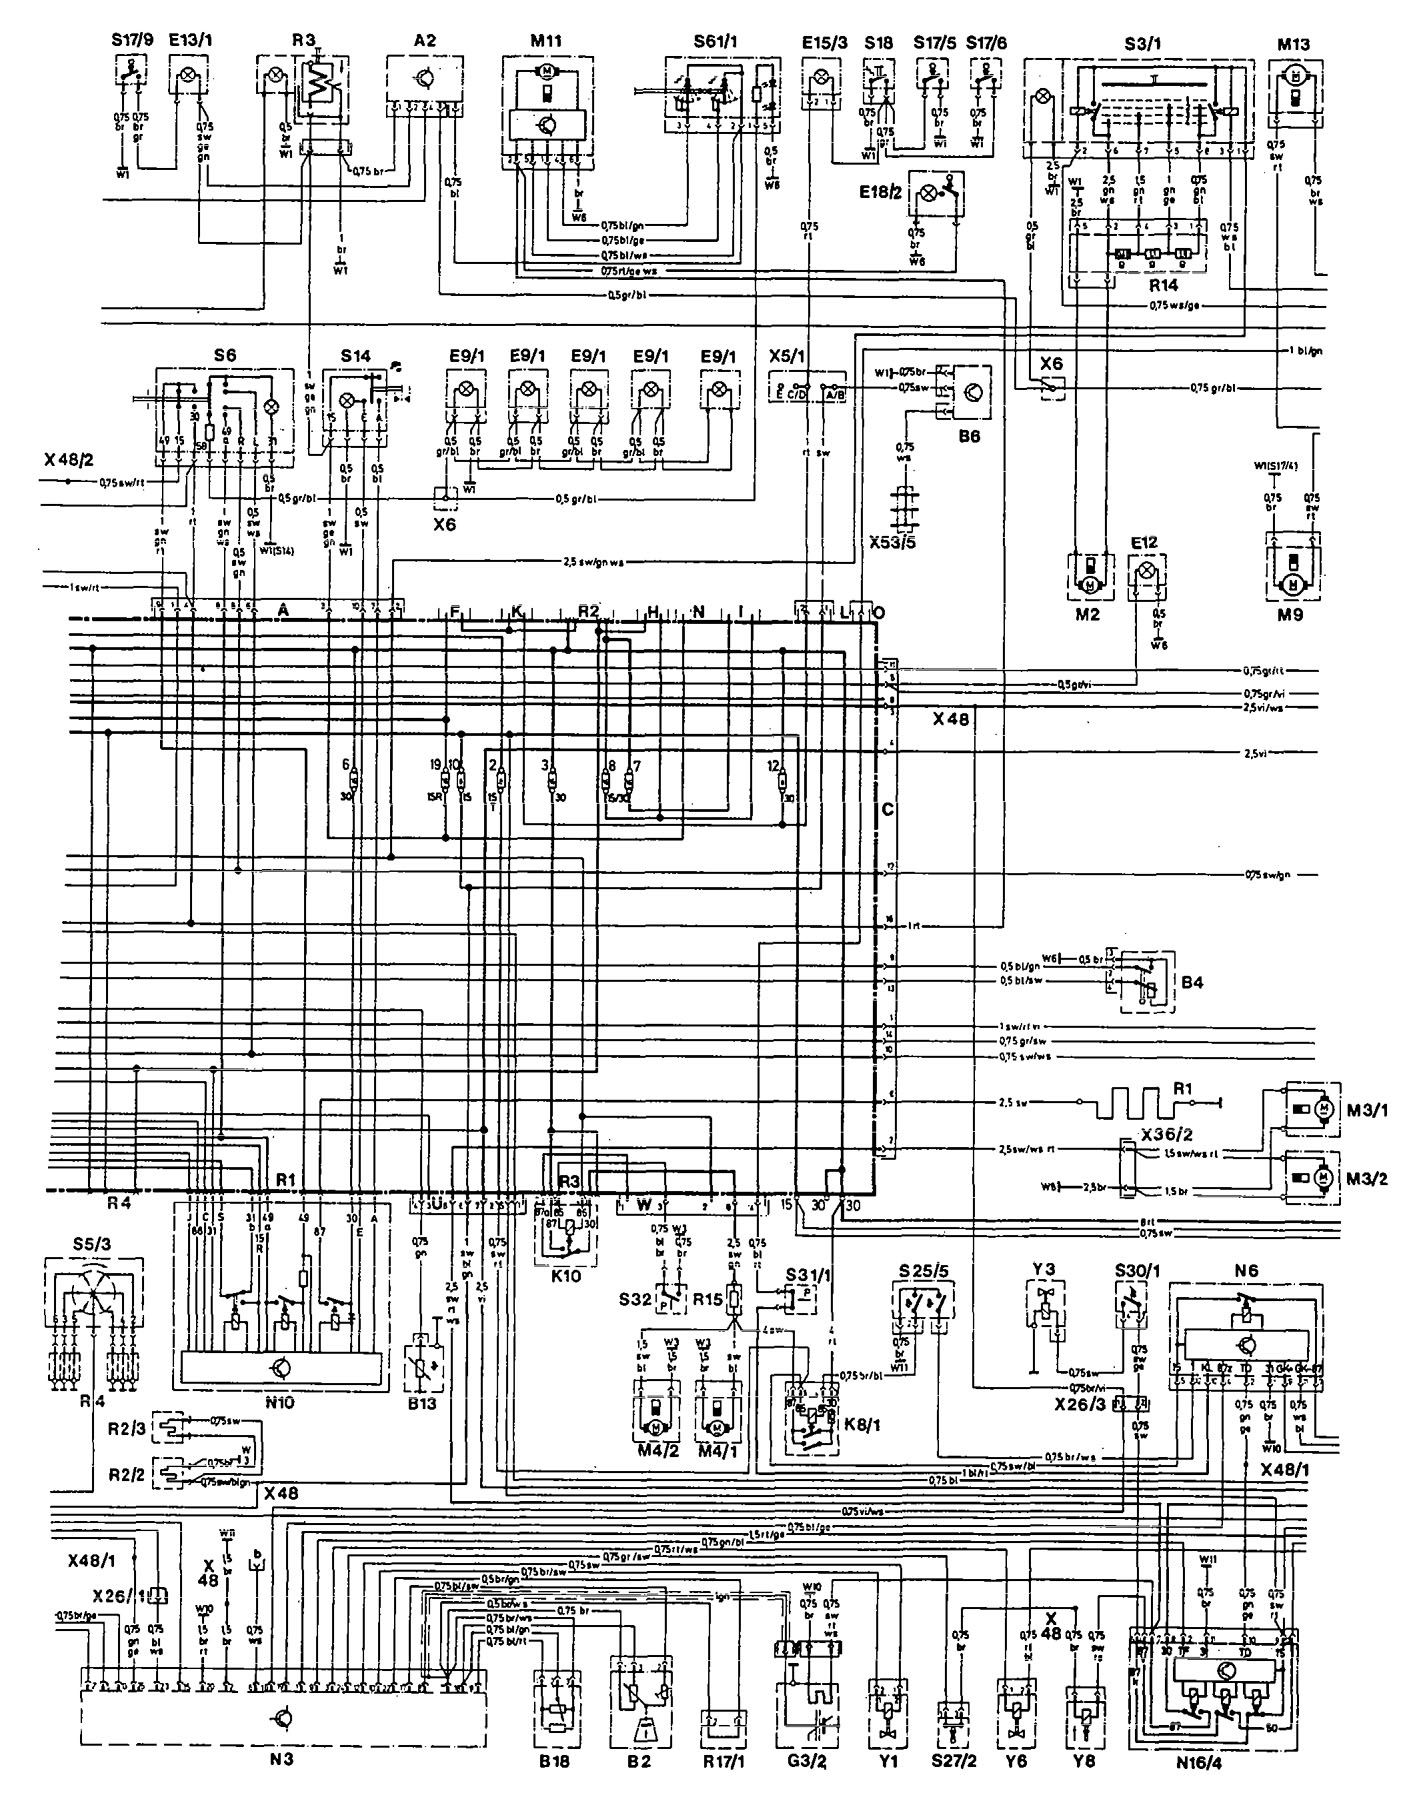 Mercedes Benz Sprinter Wiring Diagram 190e Maytag 3 Wire Clothes Dryer Door Switch Y304575 304575 1993 Diagrams Audible Warning System Rh Carknowledge Info